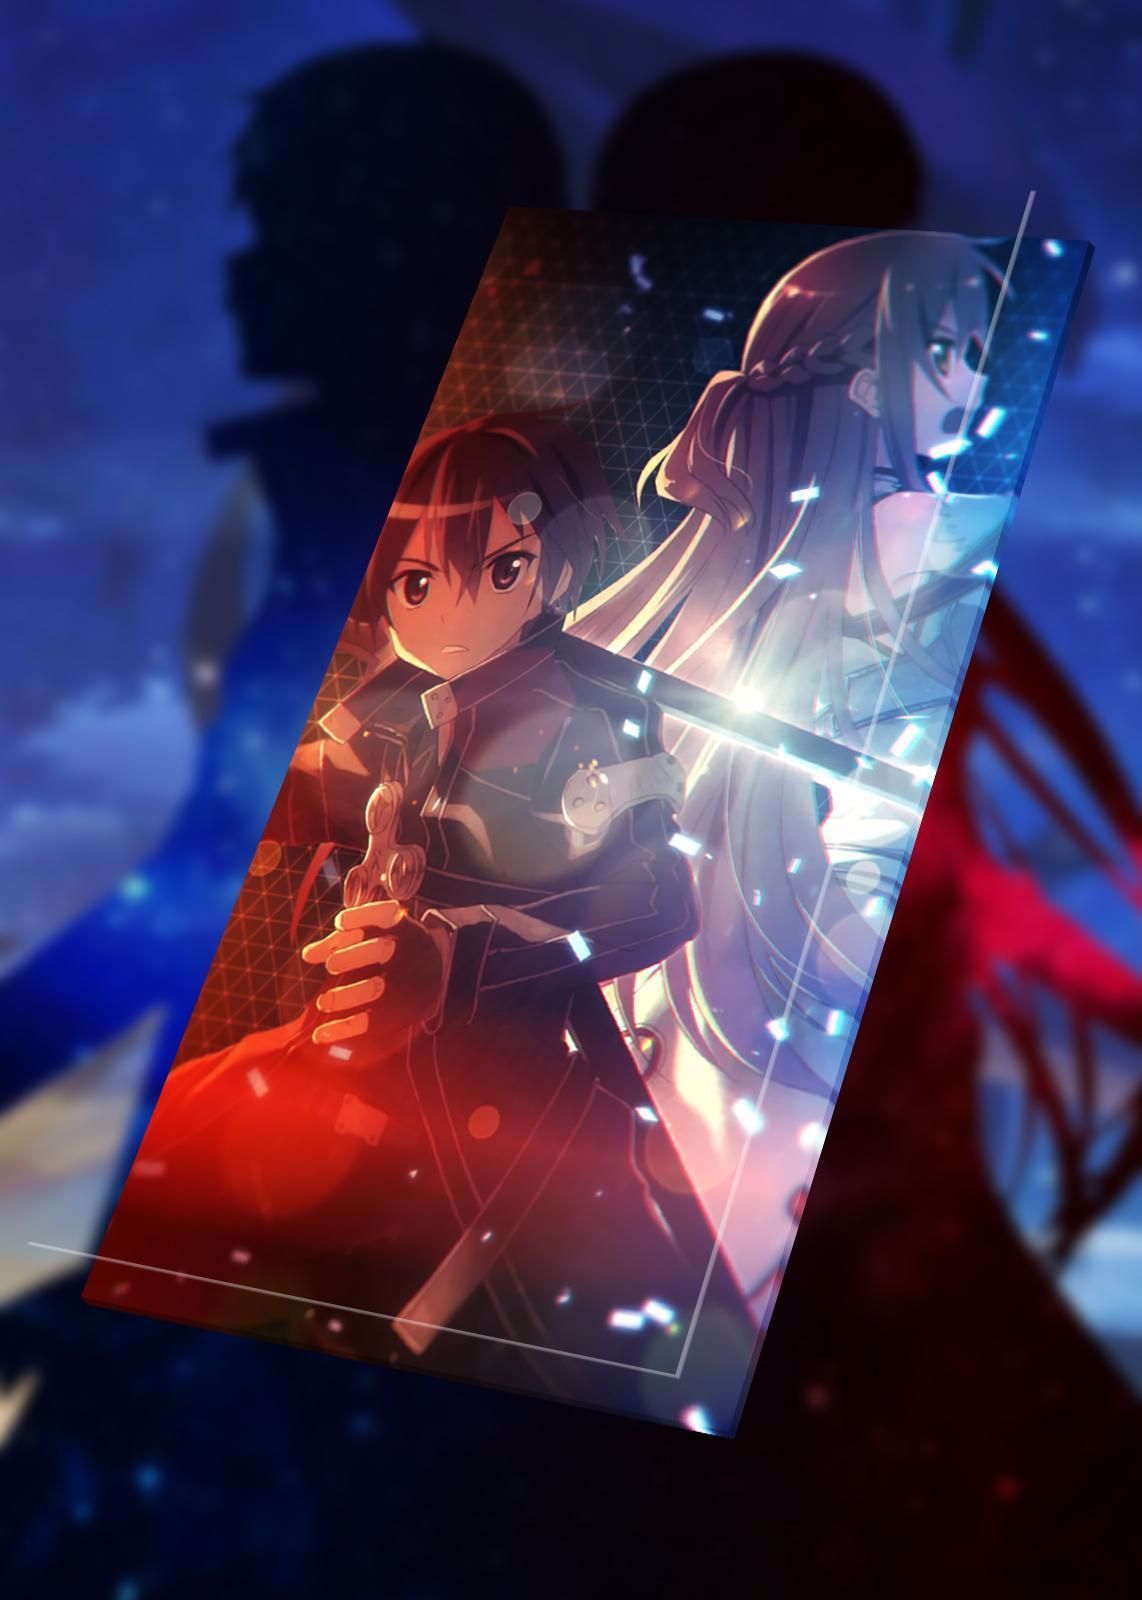 Wallpapers De Sword Art Online Hd Sword Art Online